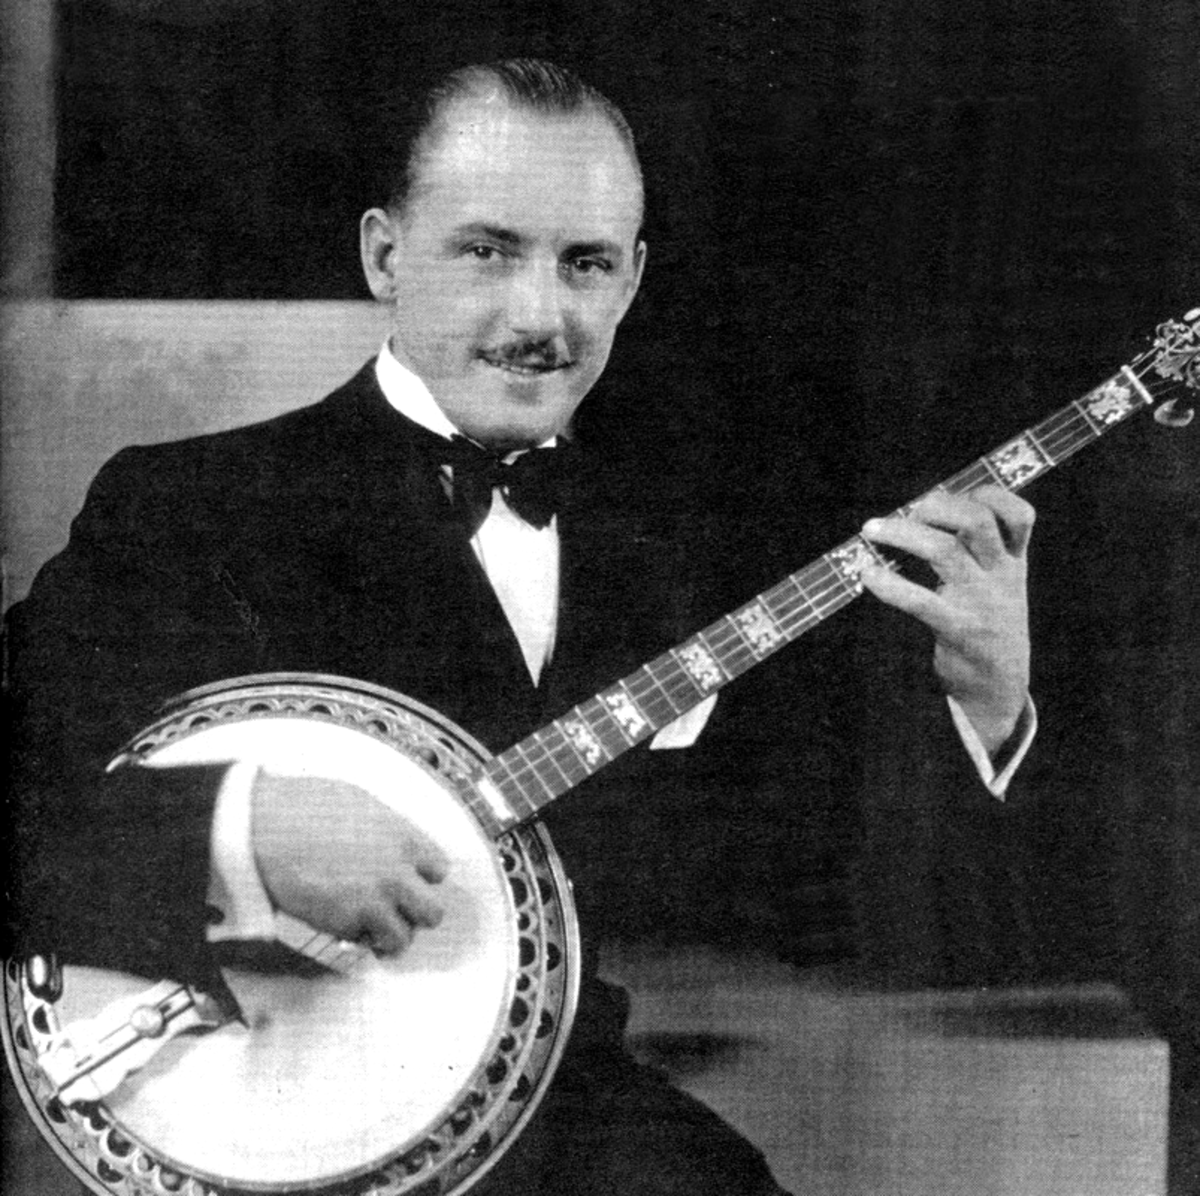 Harry Reser, arguably the best banjoist of the 1920s.